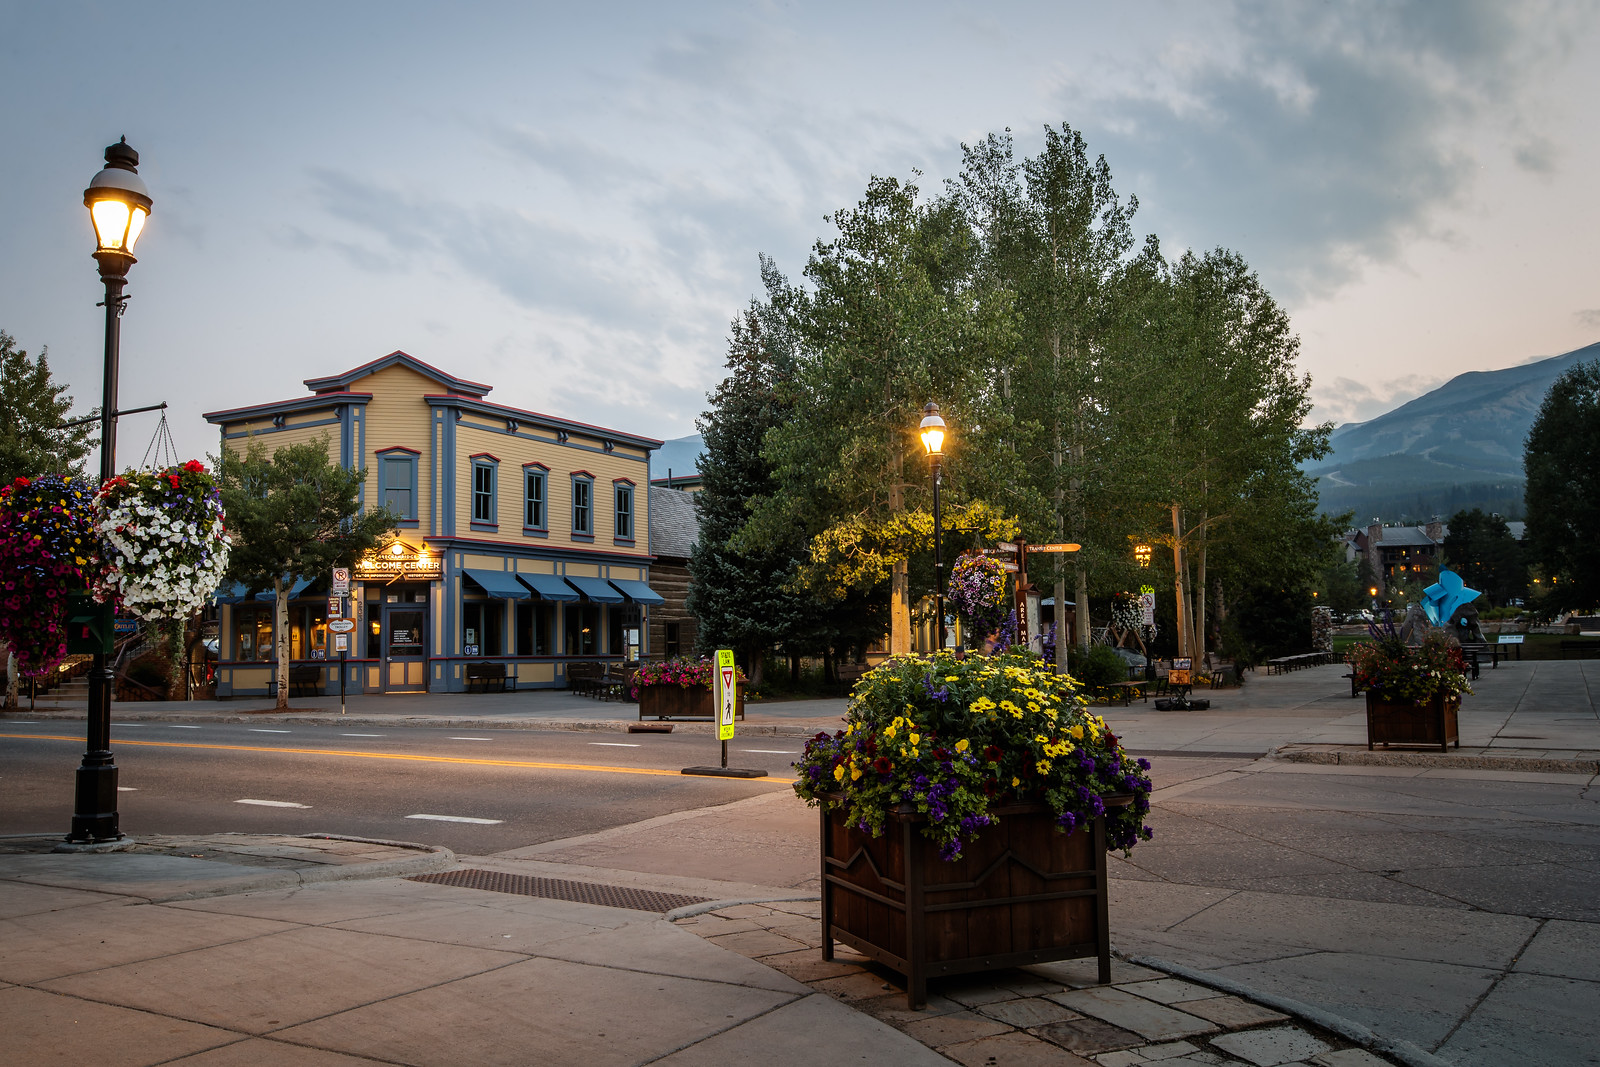 shot from the corner of main street with the Welcome Center and mountains in the background